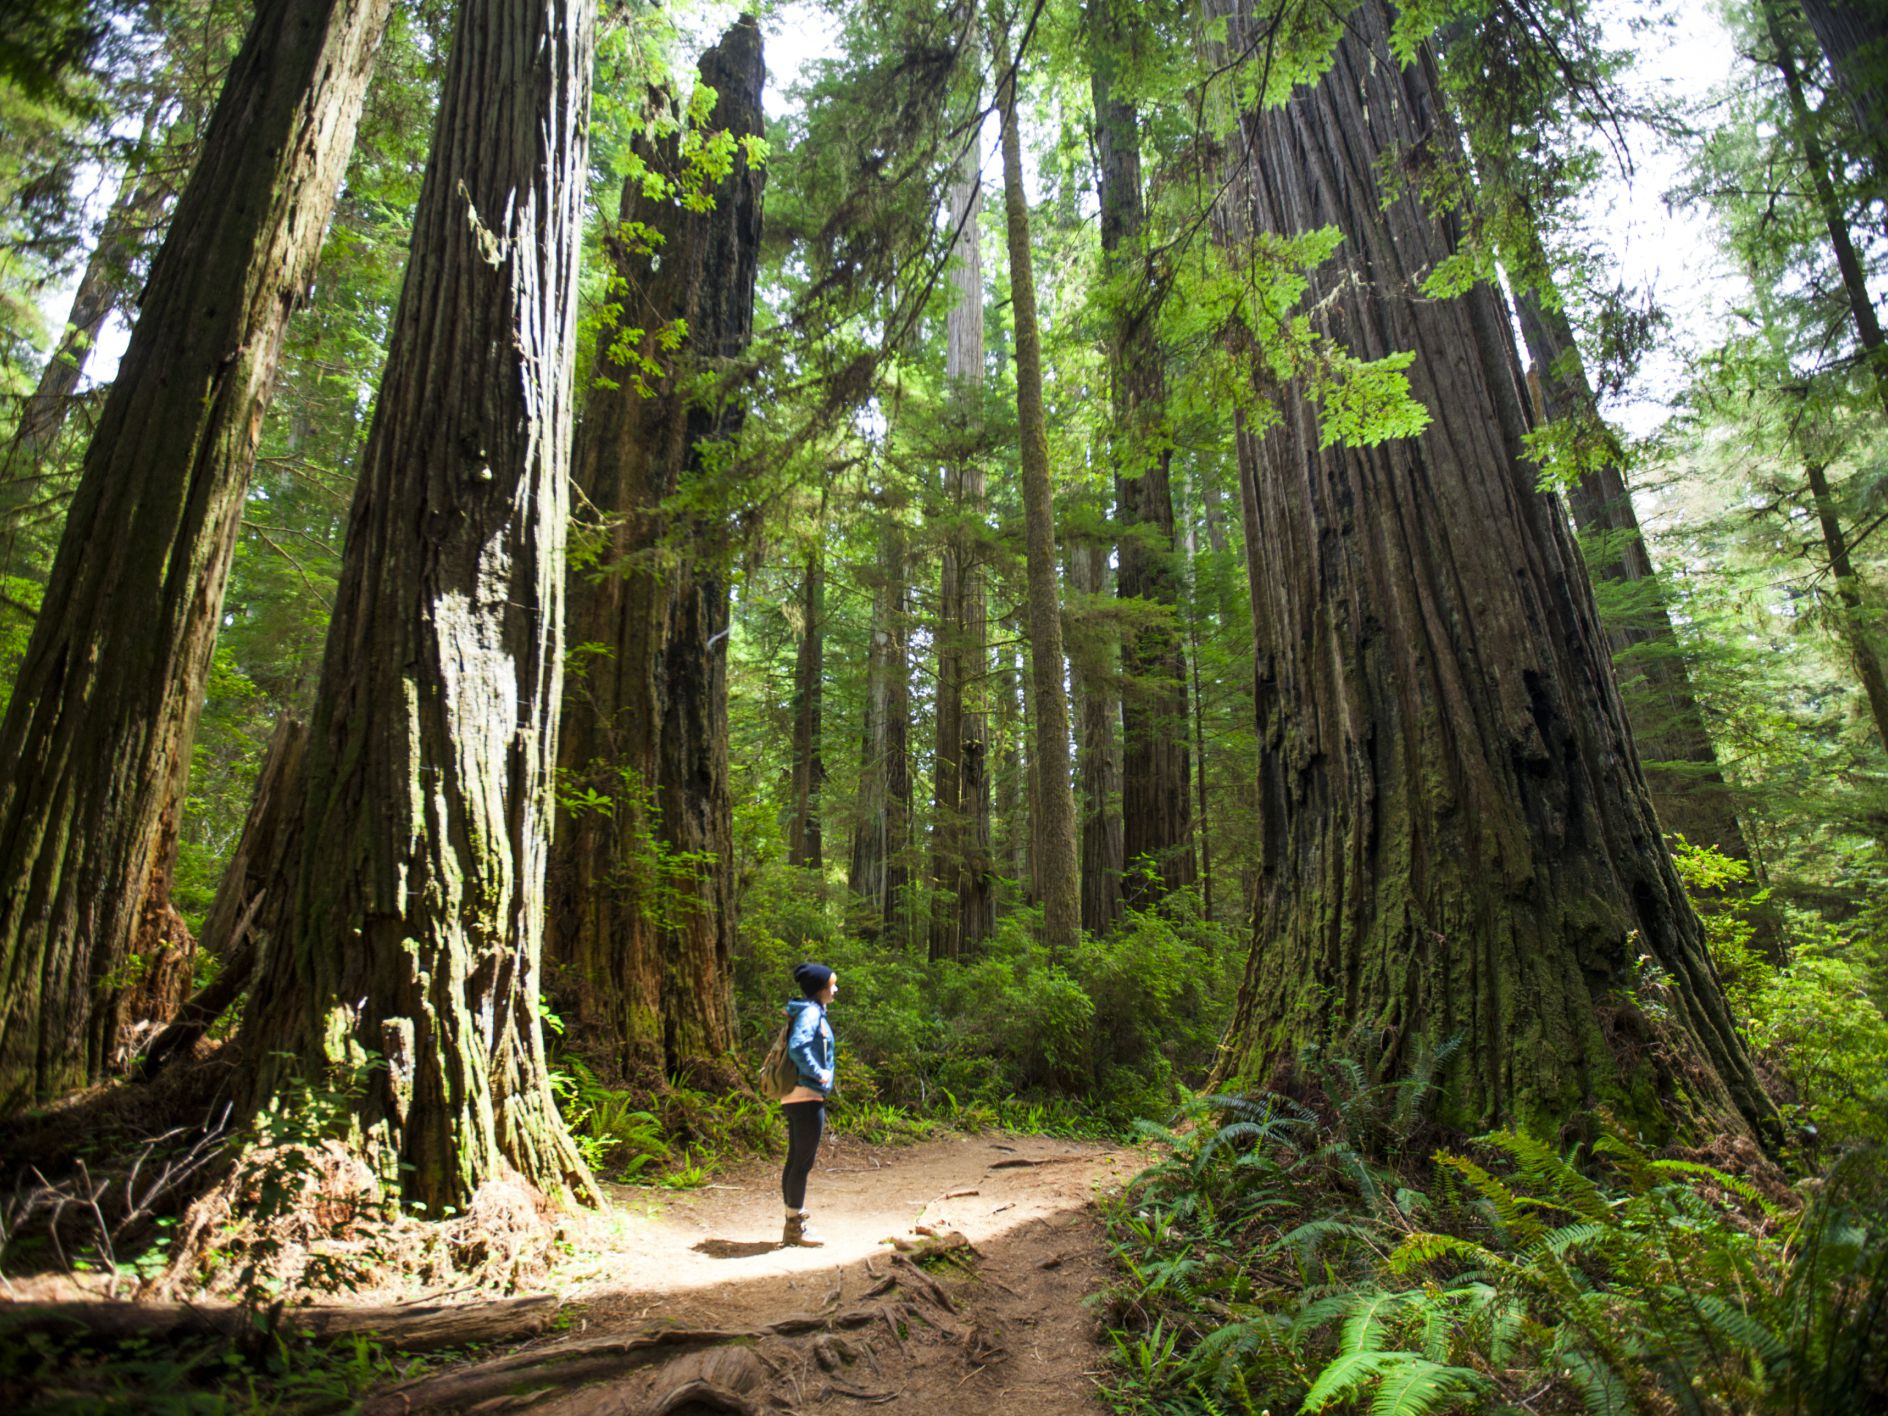 Visiting California's Redwood National Park